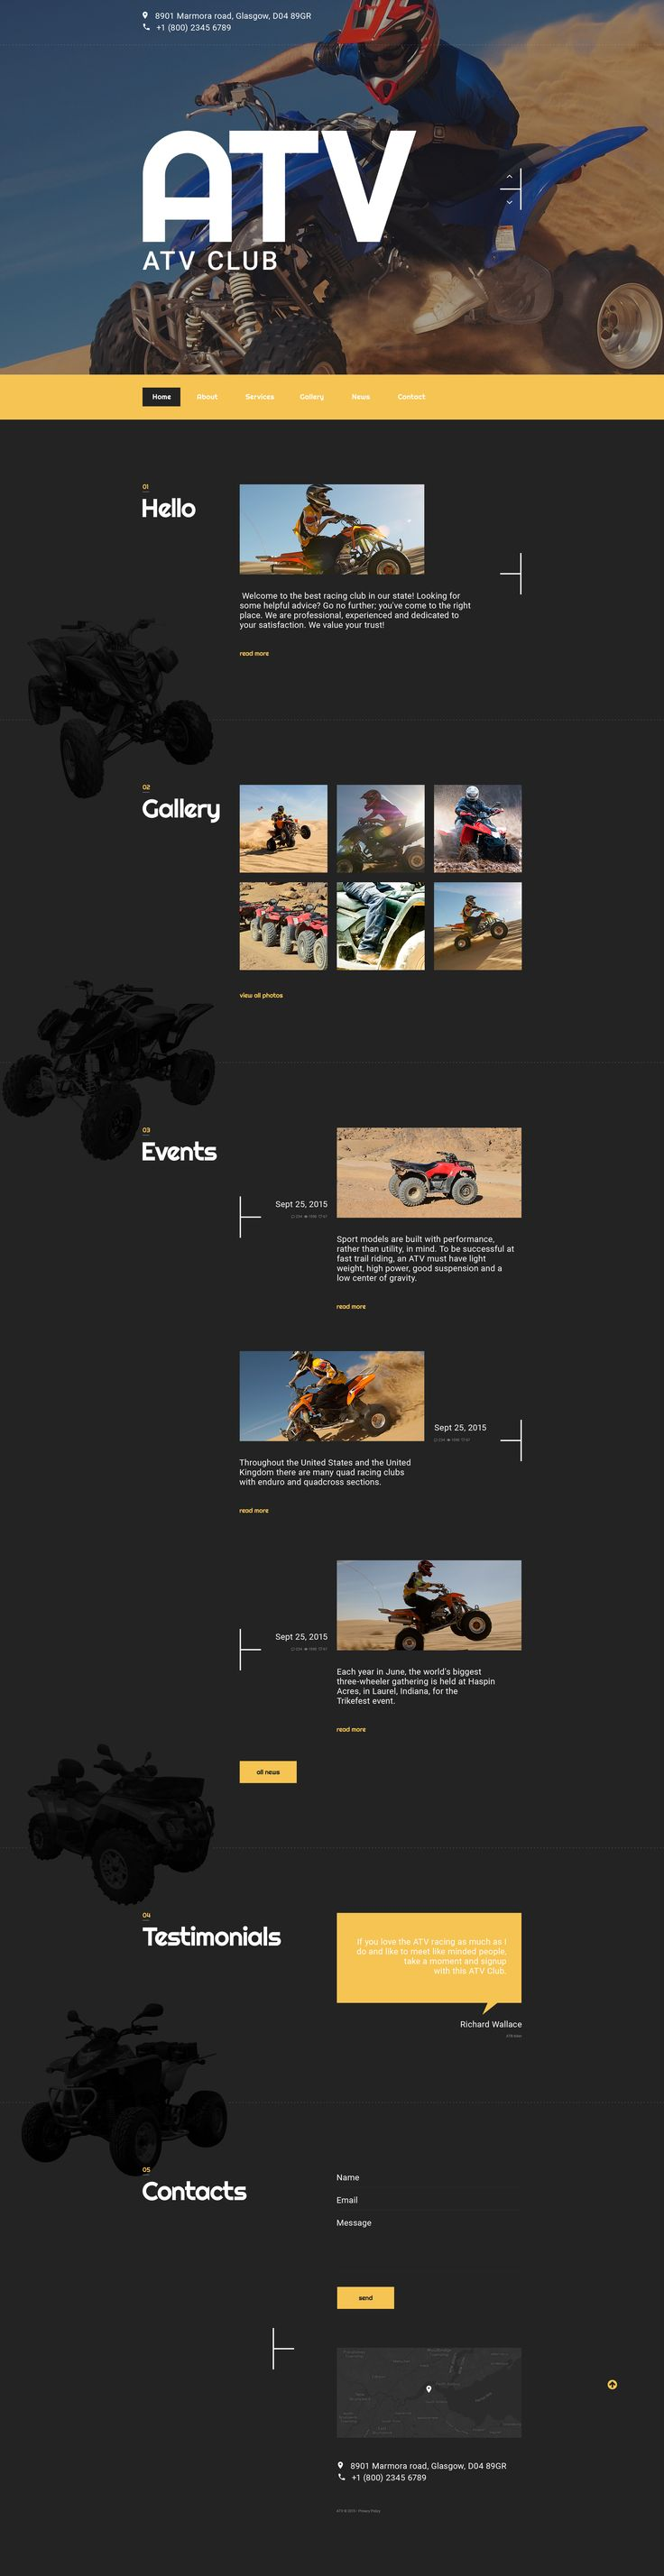 Coming soon: ATV Club  Joomla3 template. Check Out its release: http://www.templatemonster.com/